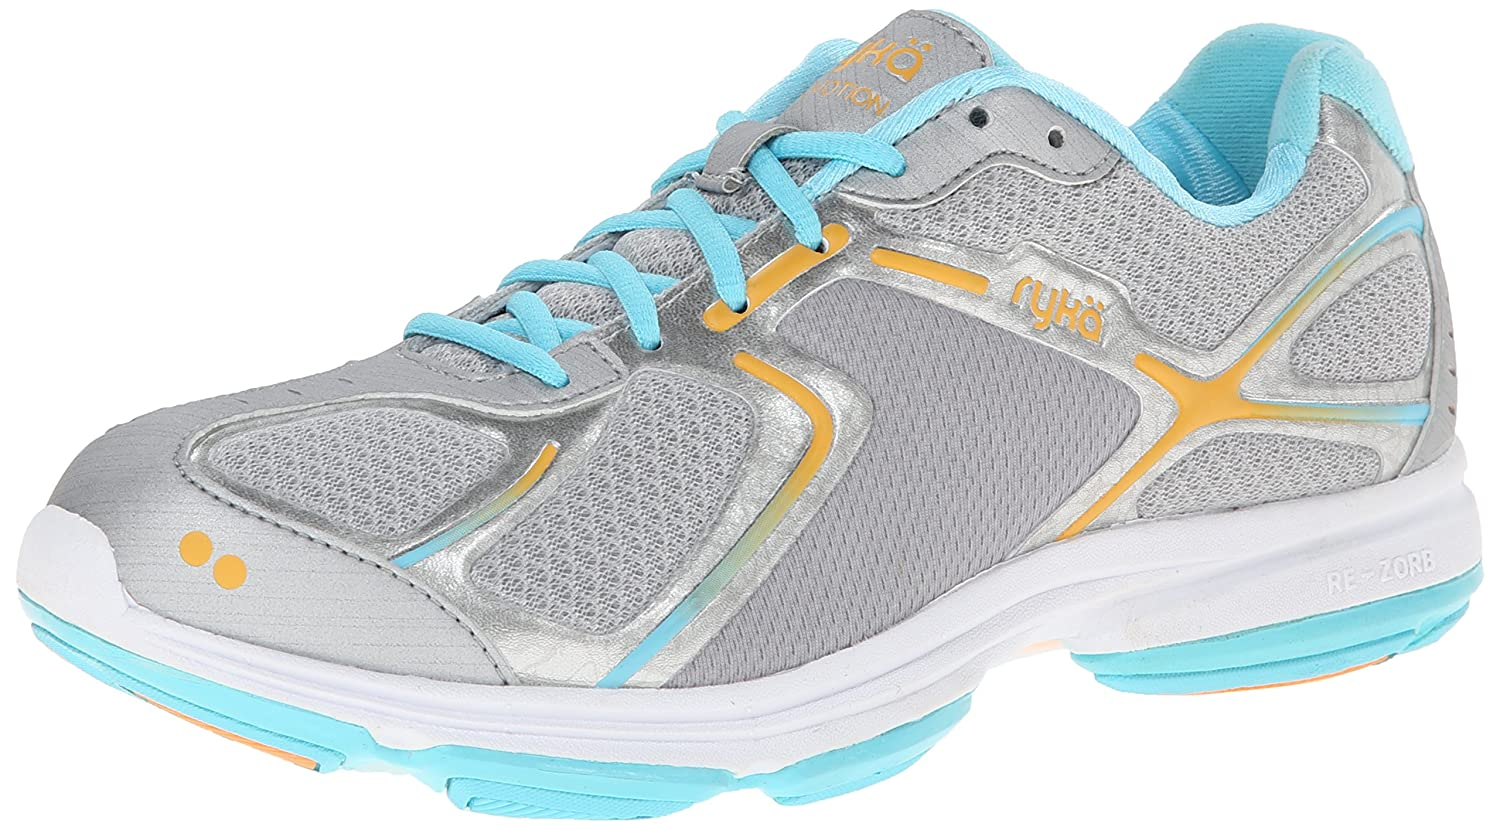 Ryka Women's Devotion Walking Shoe B00ISMKMVY 6.5 B(M) US|Grey/Light Blue/Orange